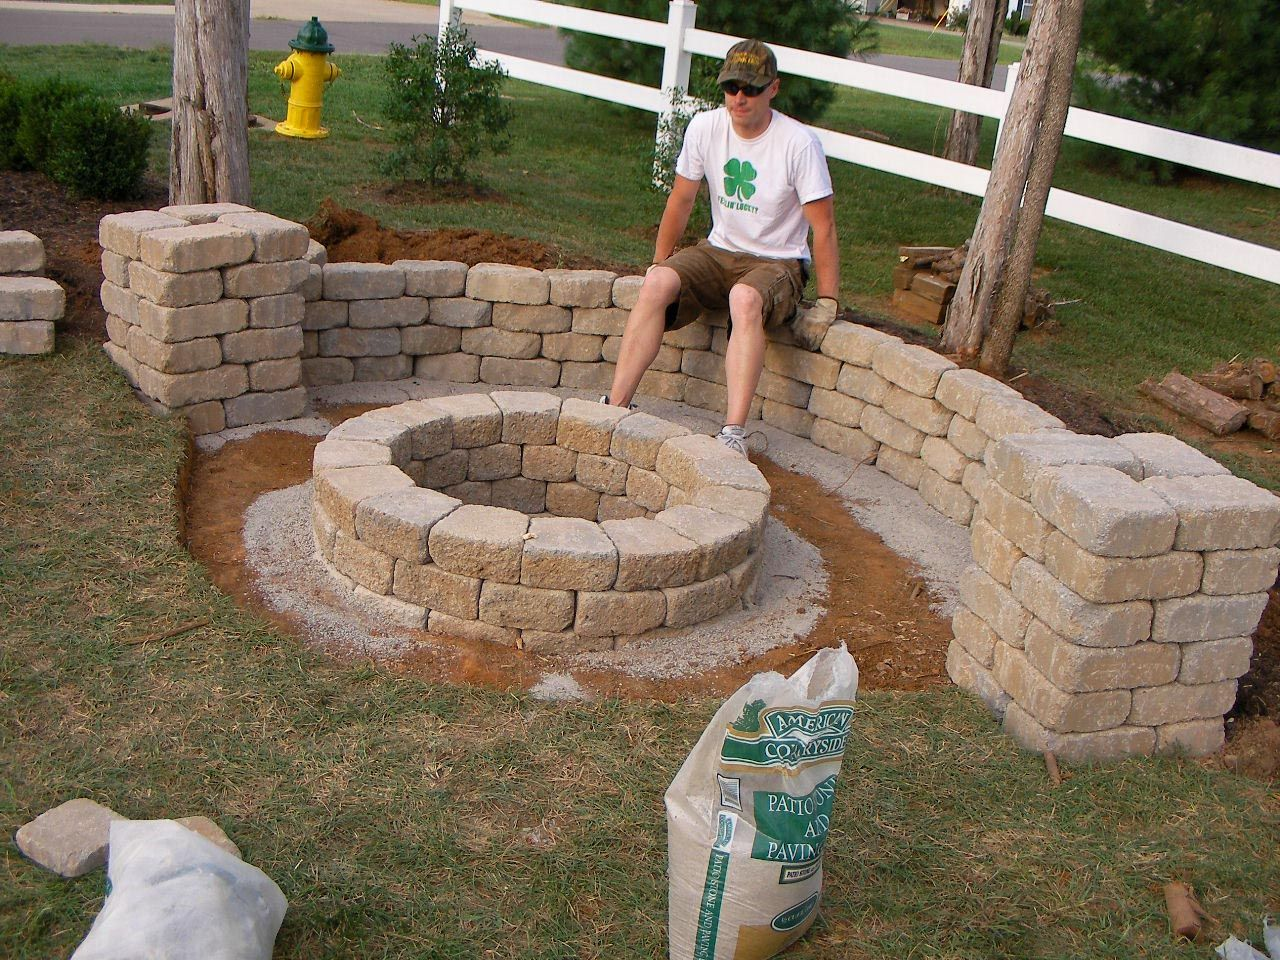 Fire Pit Design Ideas image of outdoor fire pit ideas image Easy Backyard Fire Pit Designs More